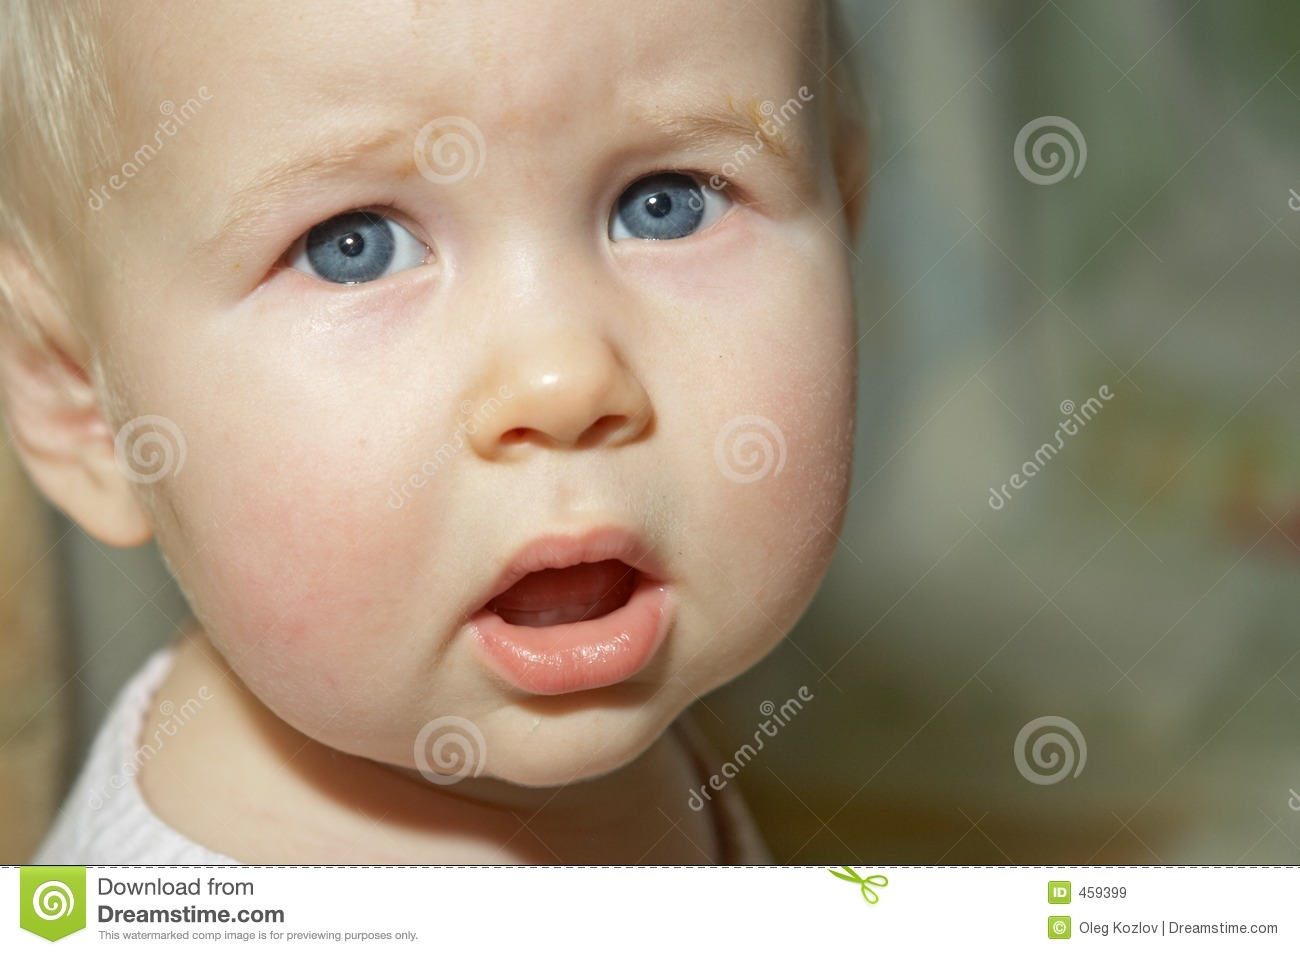 Download Baby portrait stock image. Image of grey, closeup, infant - 459399